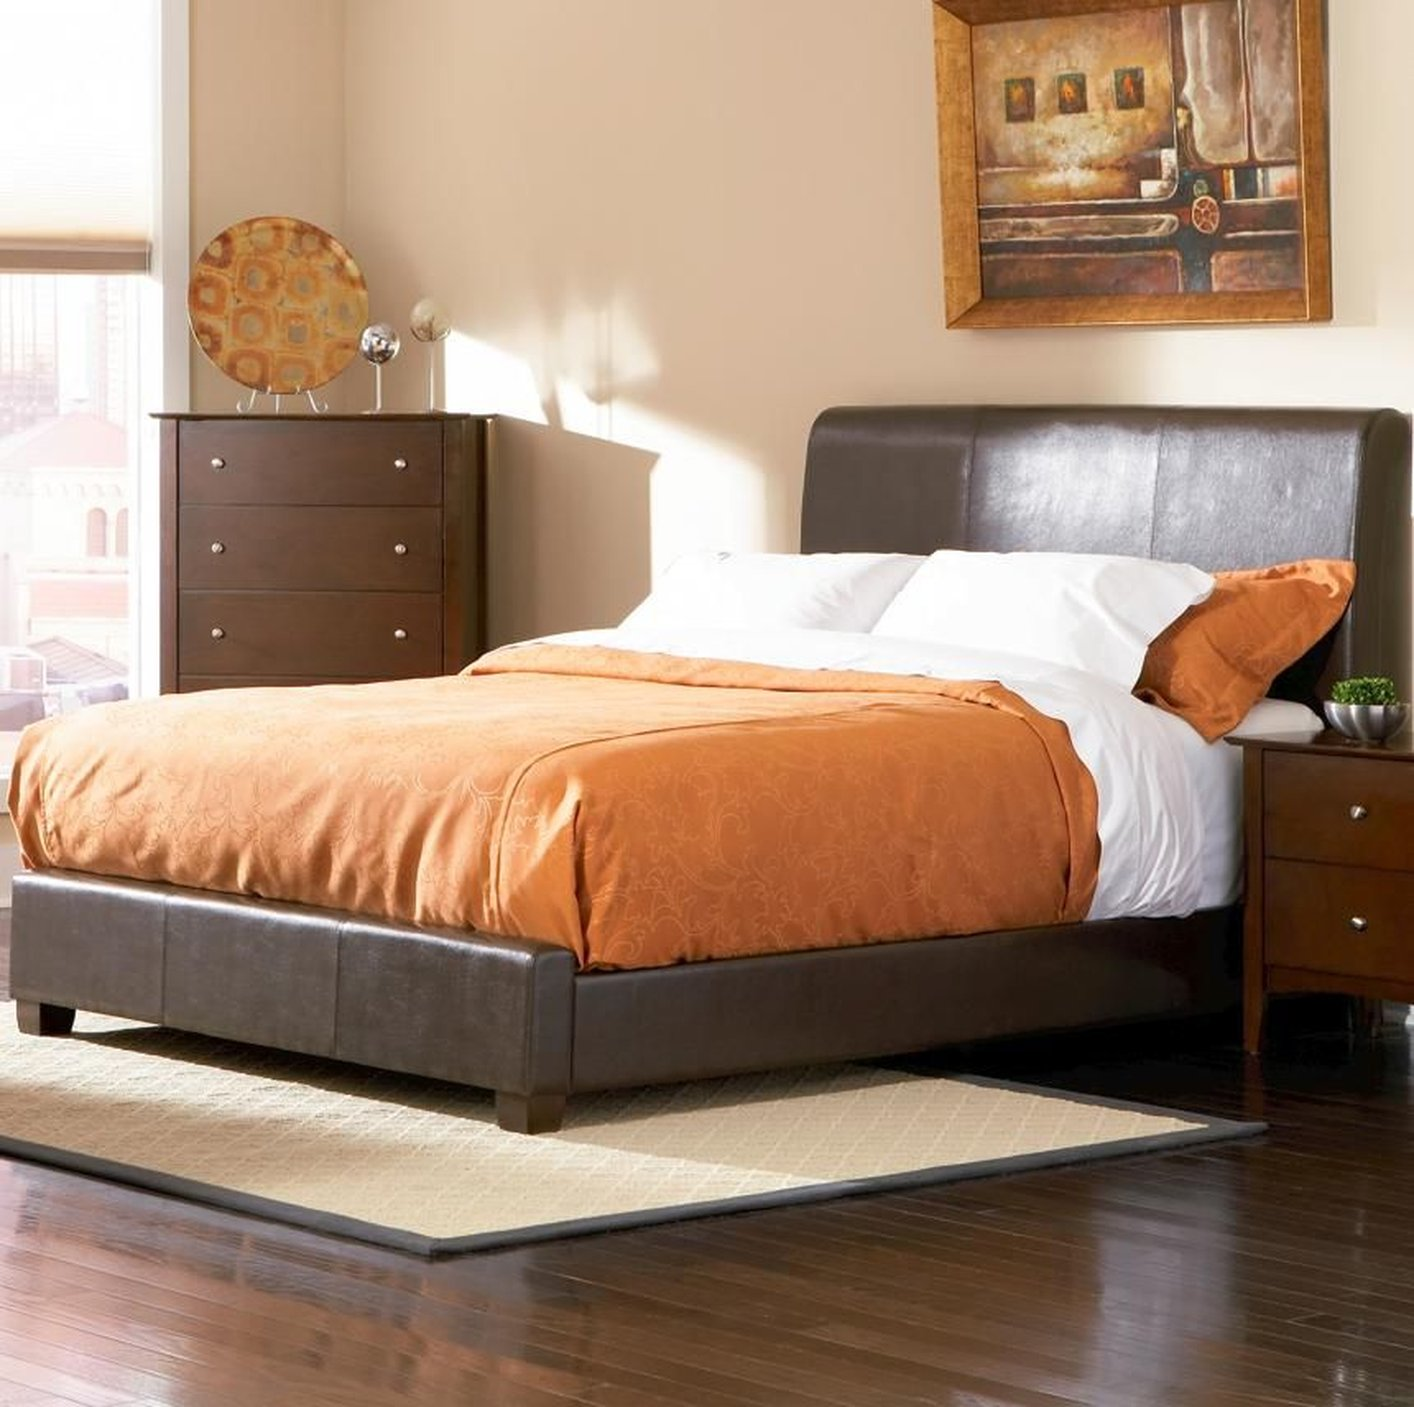 Coaster 201150kw brown california king size leather bed for Bedroom furniture 90036